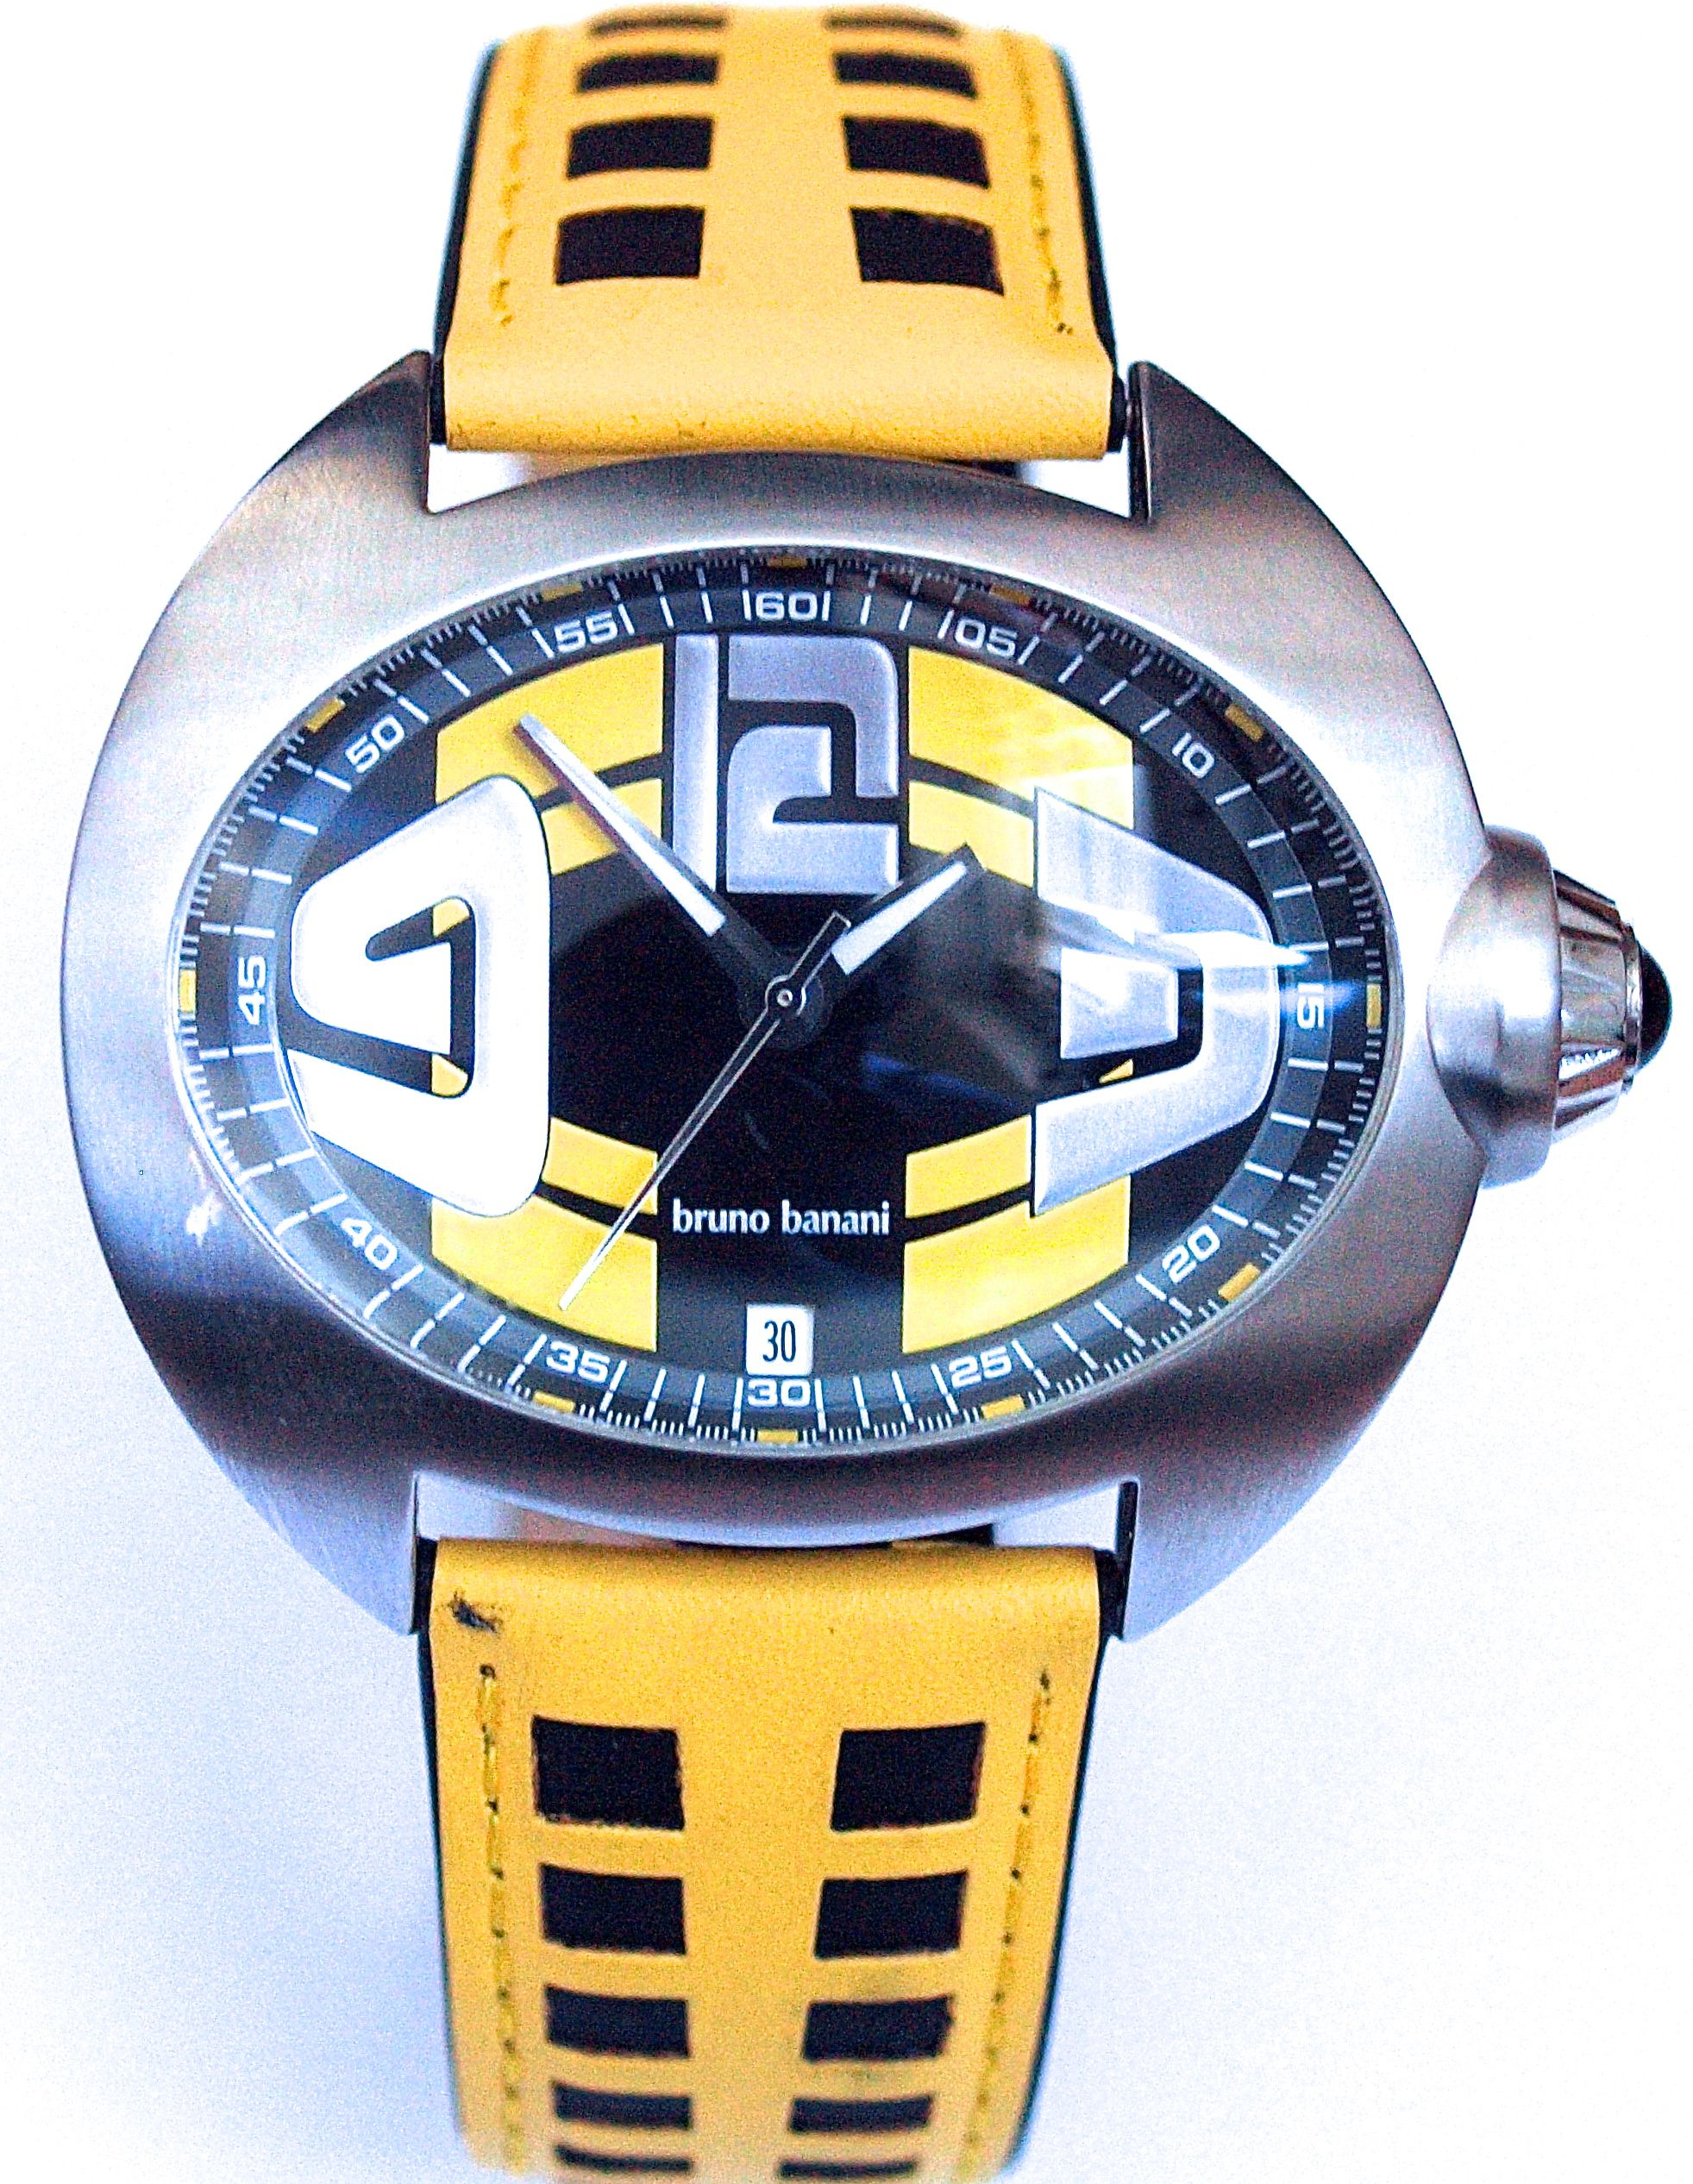 watch versace deal style watches a personality pin strong sporty the with black has v race